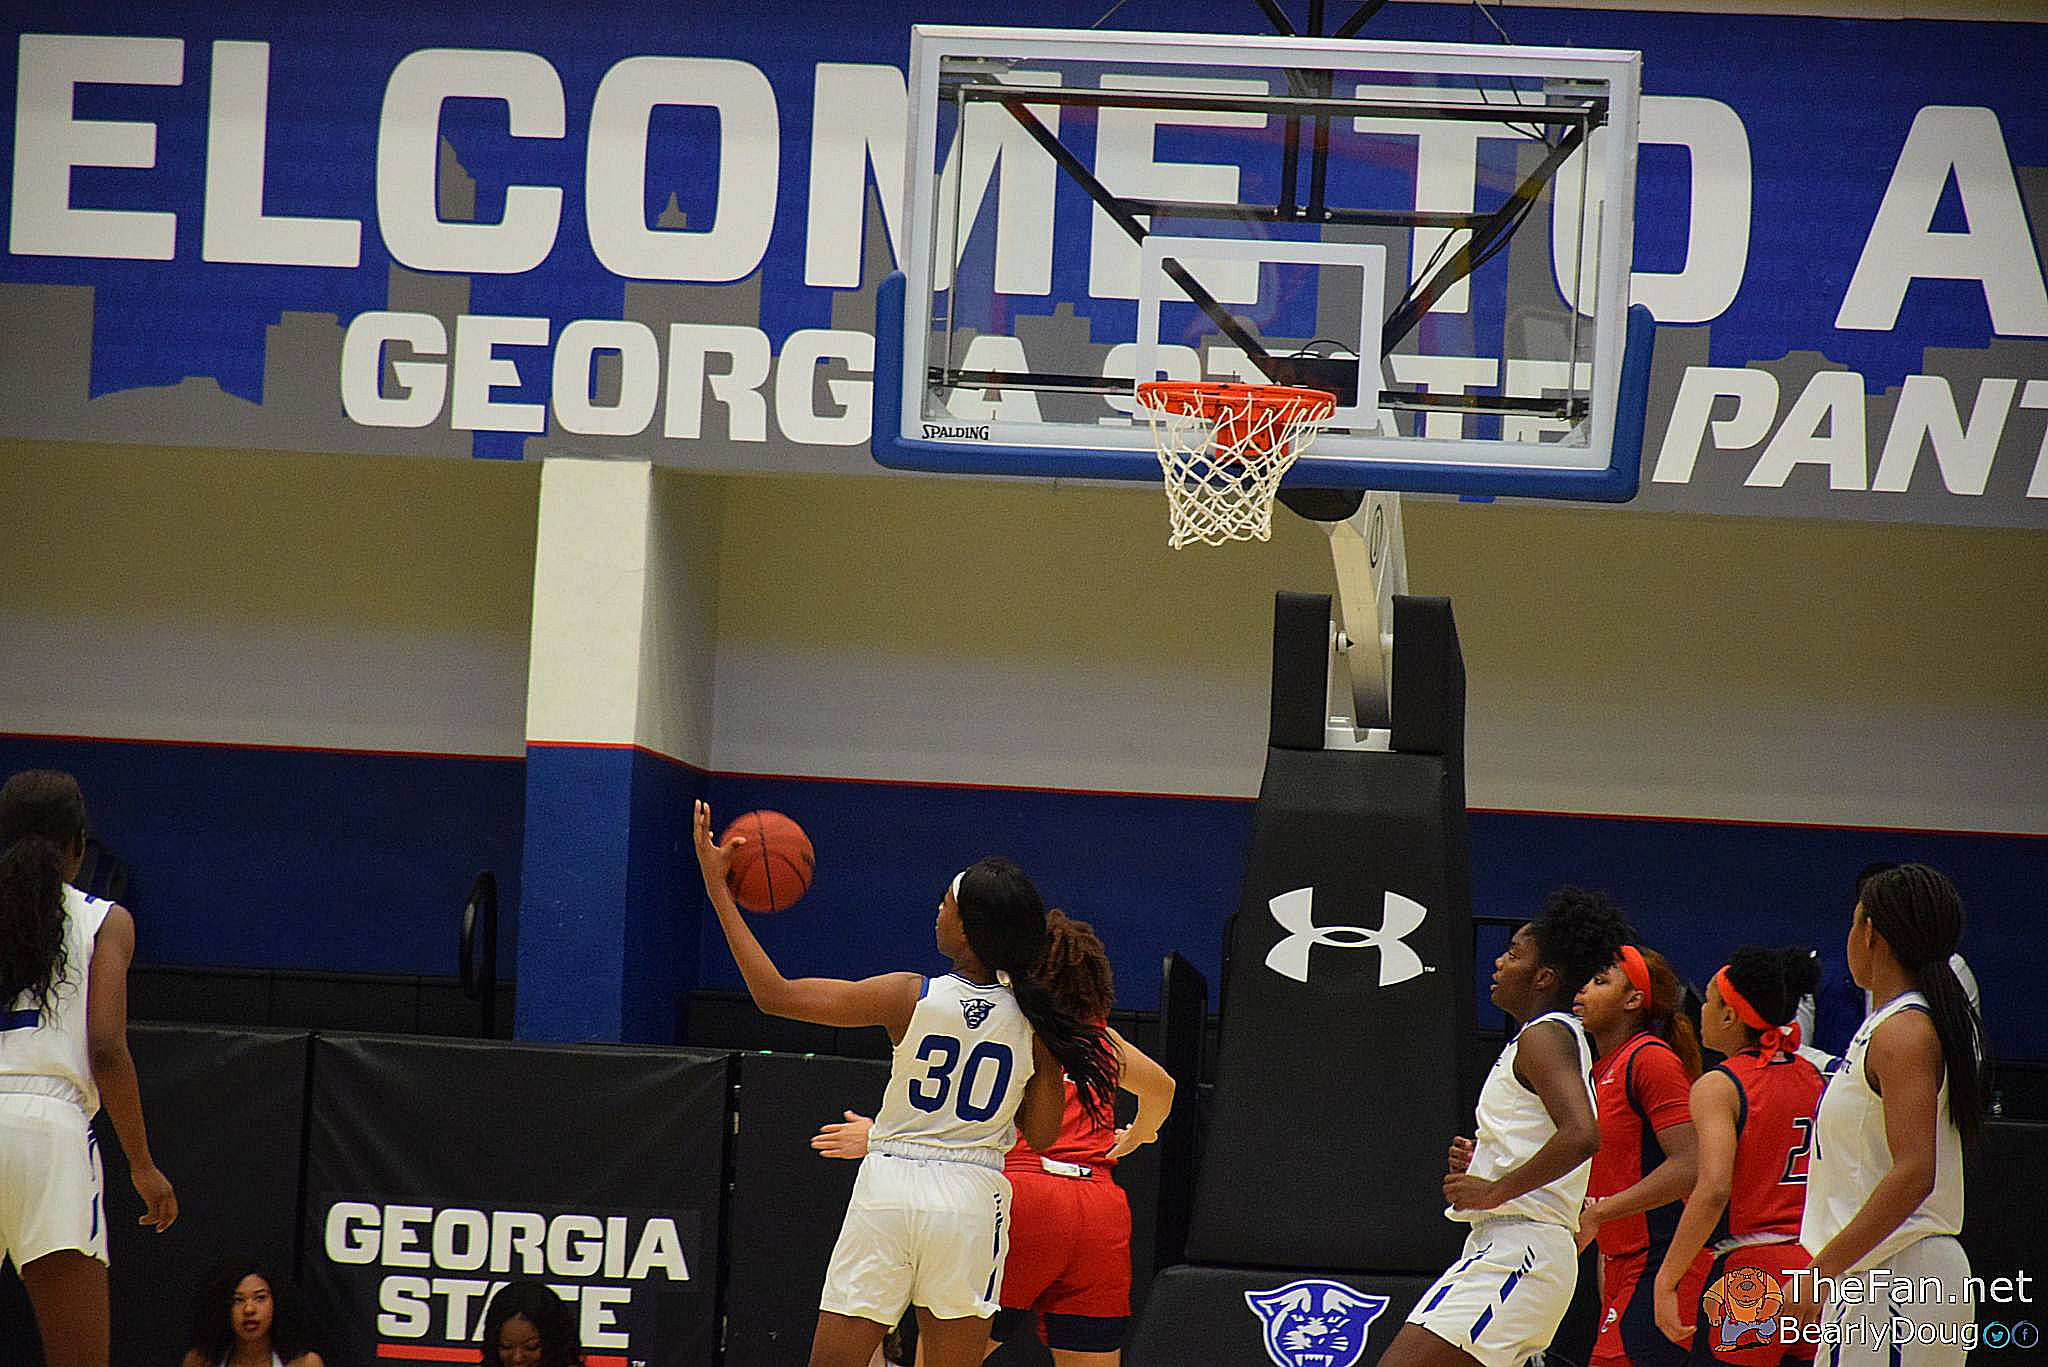 2019-20 WBB Game Photos – South Alabama Jaguars vs. Georgia State Panthers